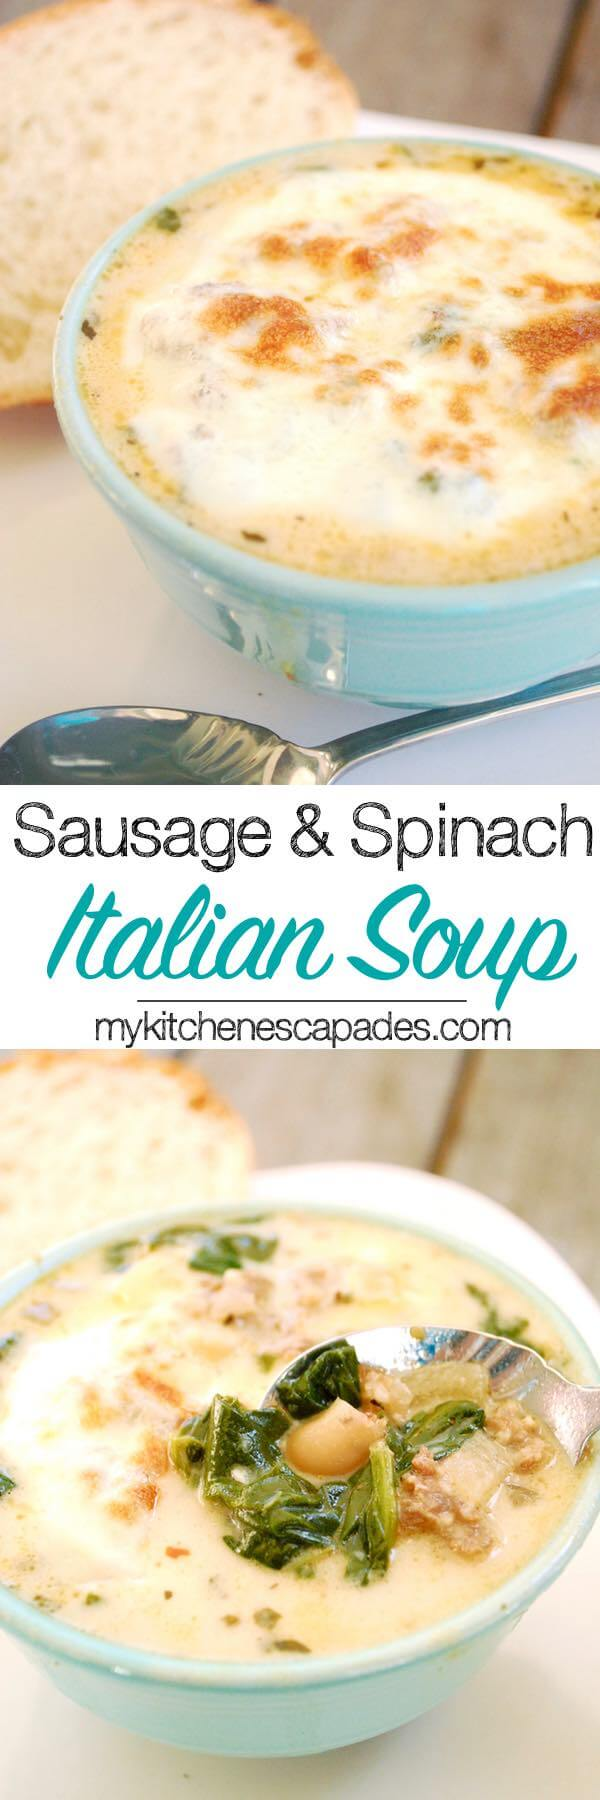 Sausage & Spinach Italian Soup